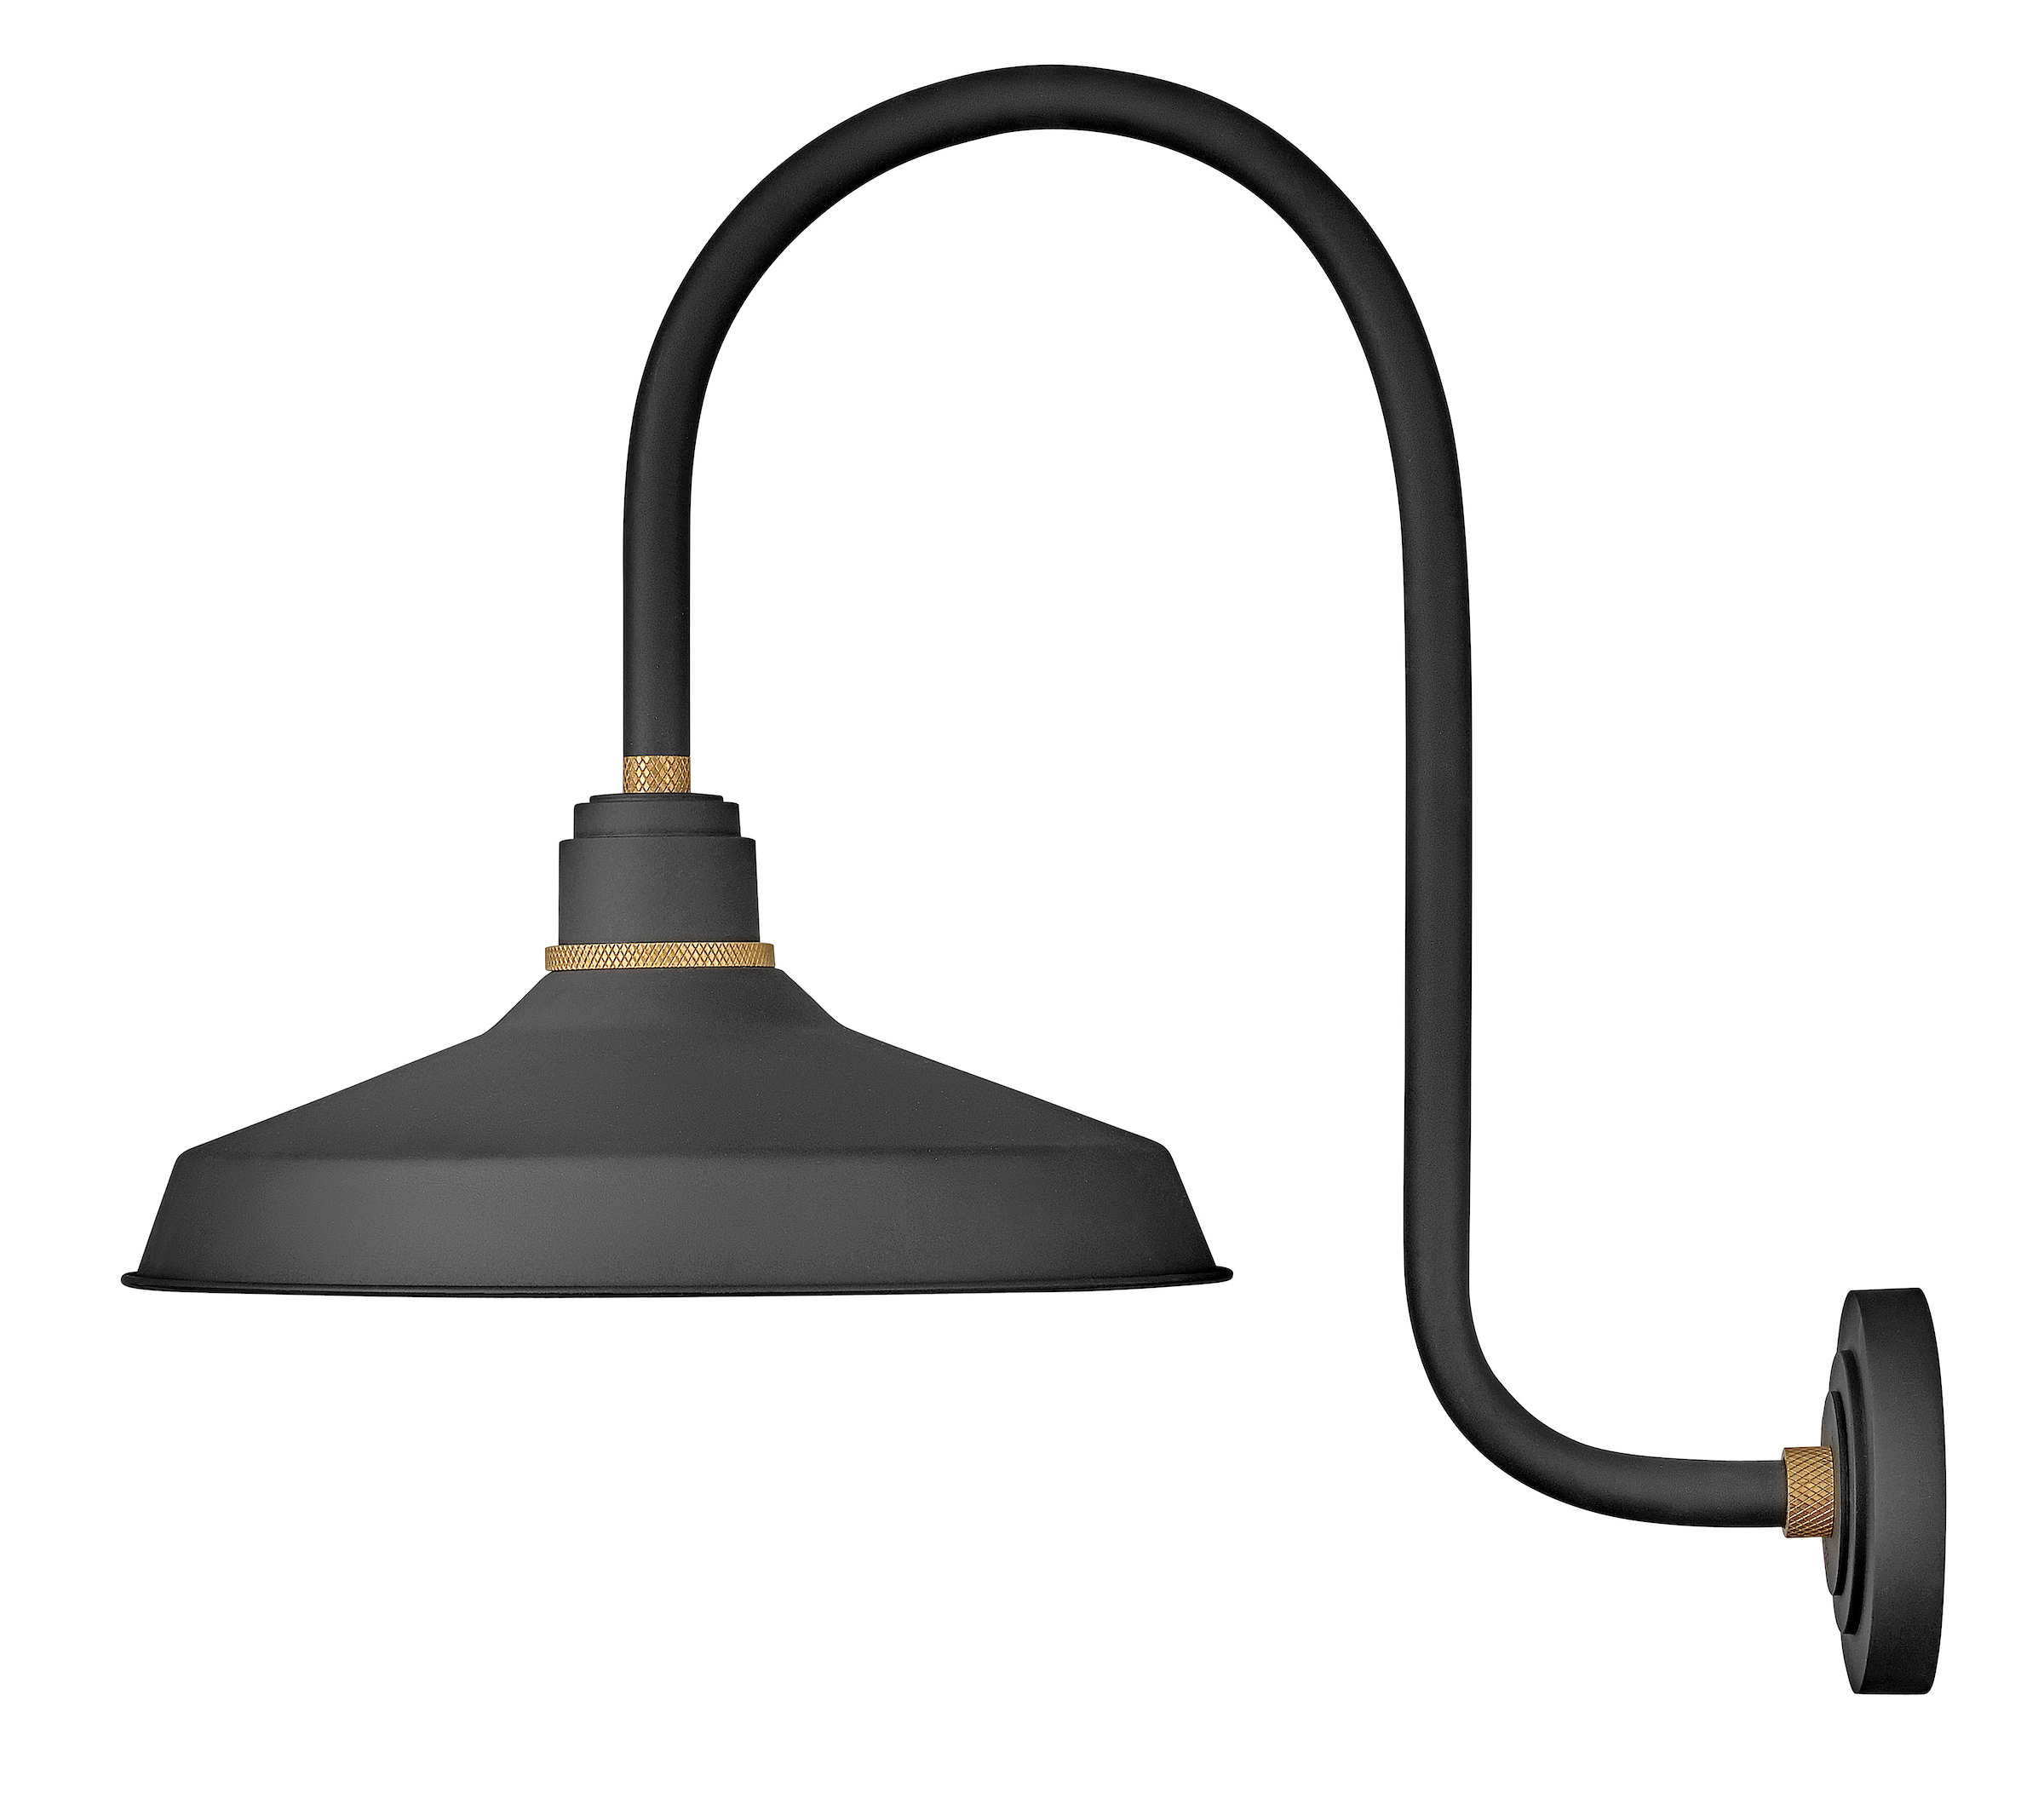 foundry outdoor 16 inch industrial shade hook arm wall light by hinkley lighting 10473tk